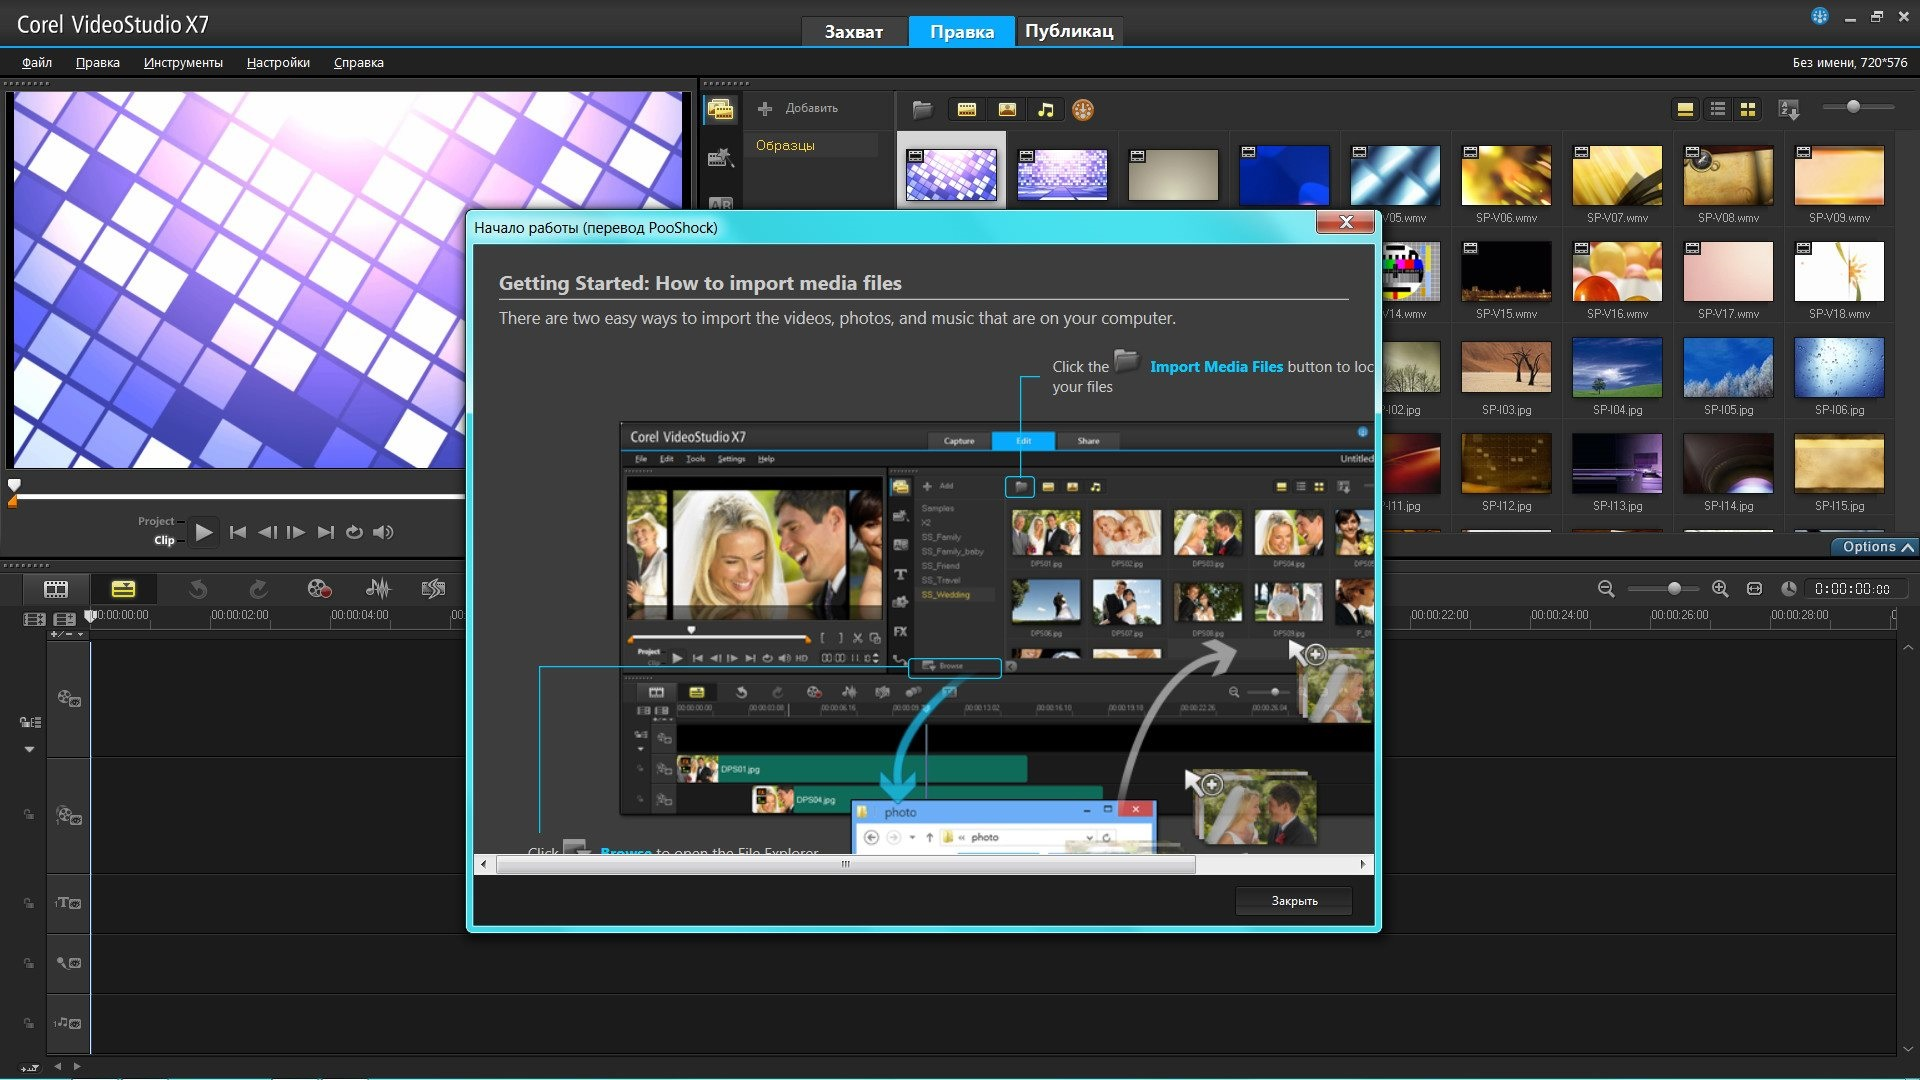 Newblue video fx mega pack plugins keygen crack keargieho for Free corel video studio templates